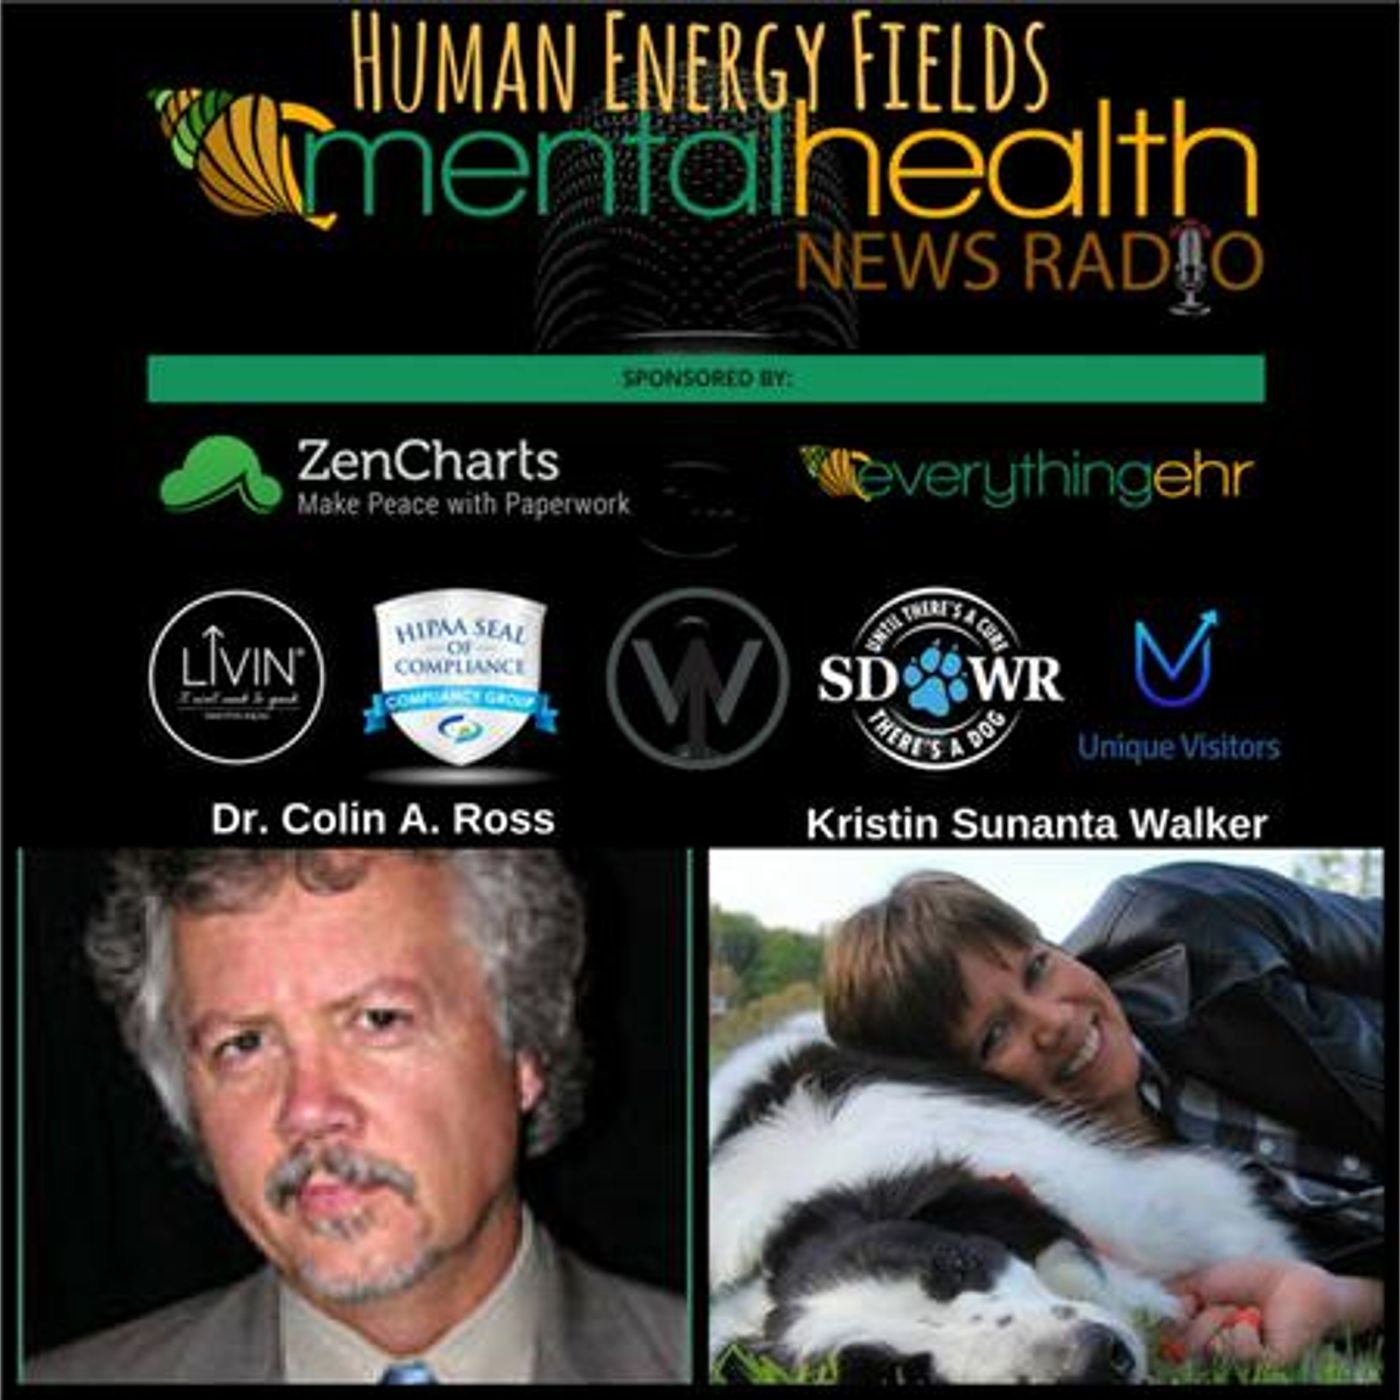 Mental Health News Radio - Human Energy Fields with Colin A. Ross, M.D.